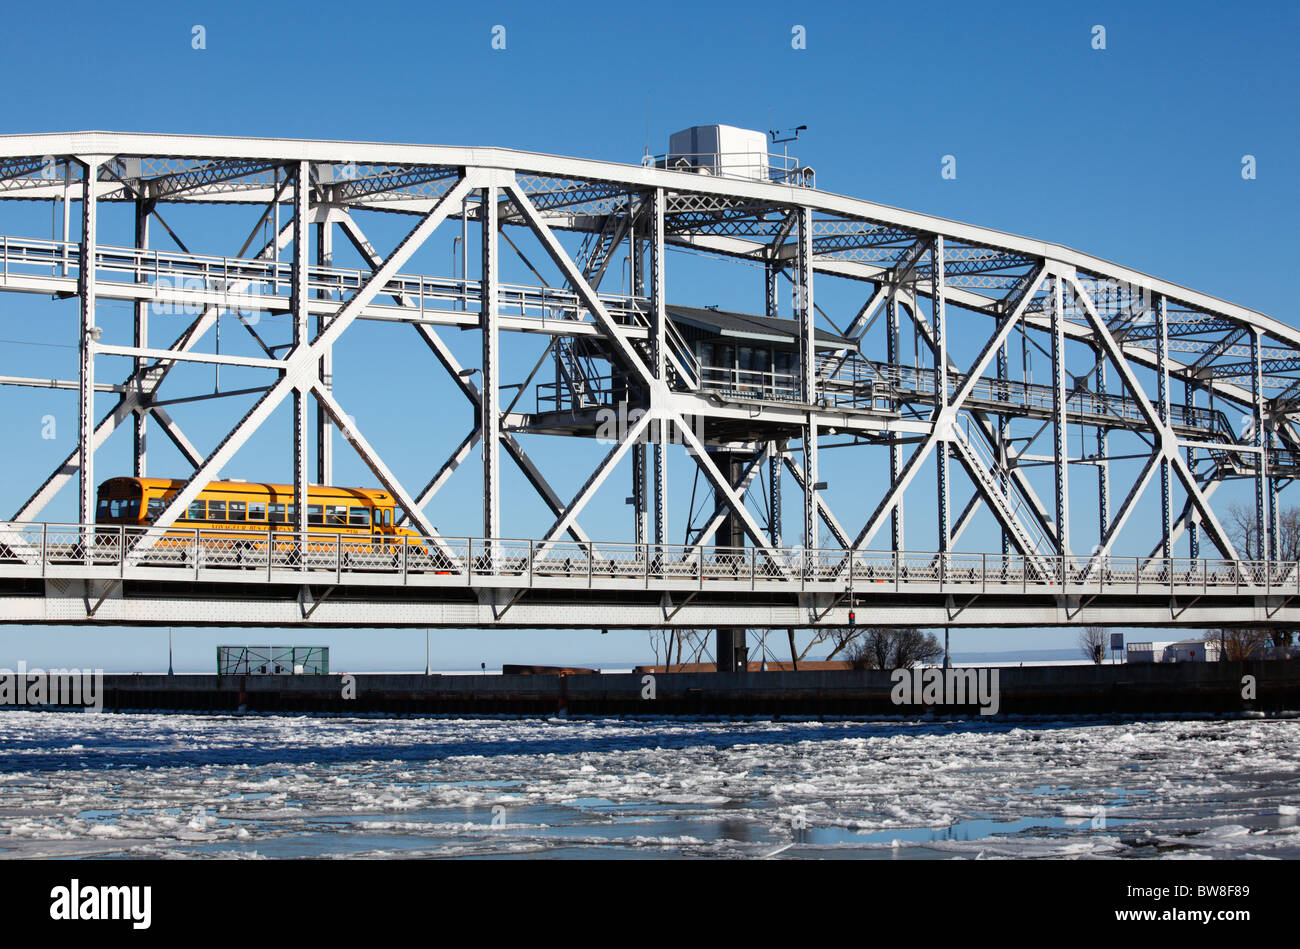 Winter view of the aerial lift bridge in Duluth, Minnesota. - Stock Image